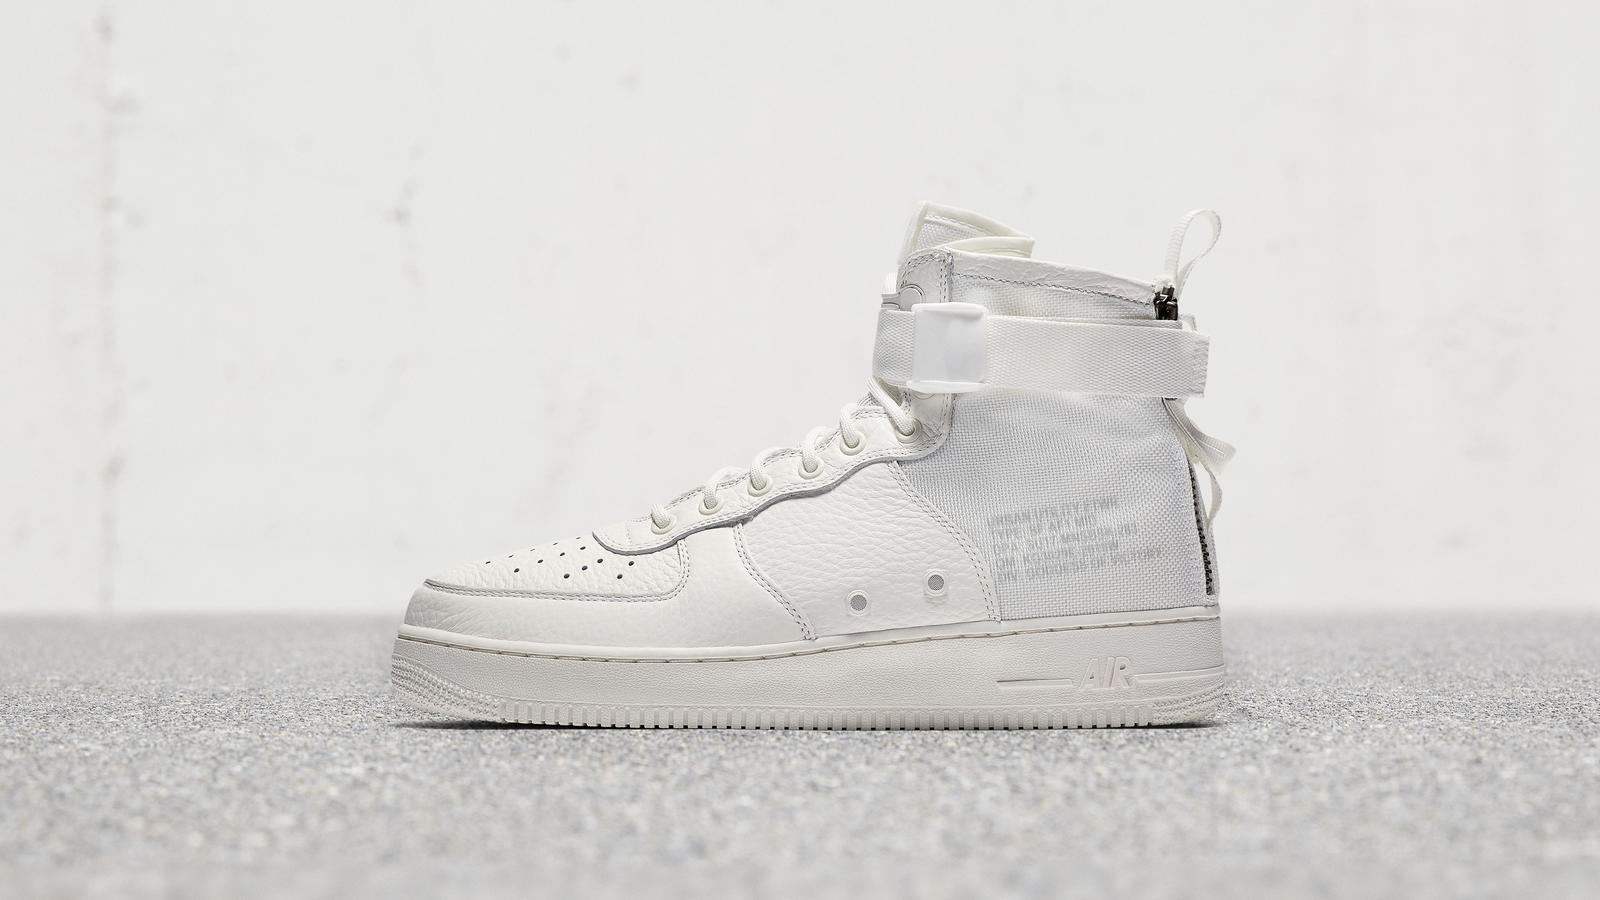 c994b3a1641a Nike Special Field Air Force 1 Mid - Nike News